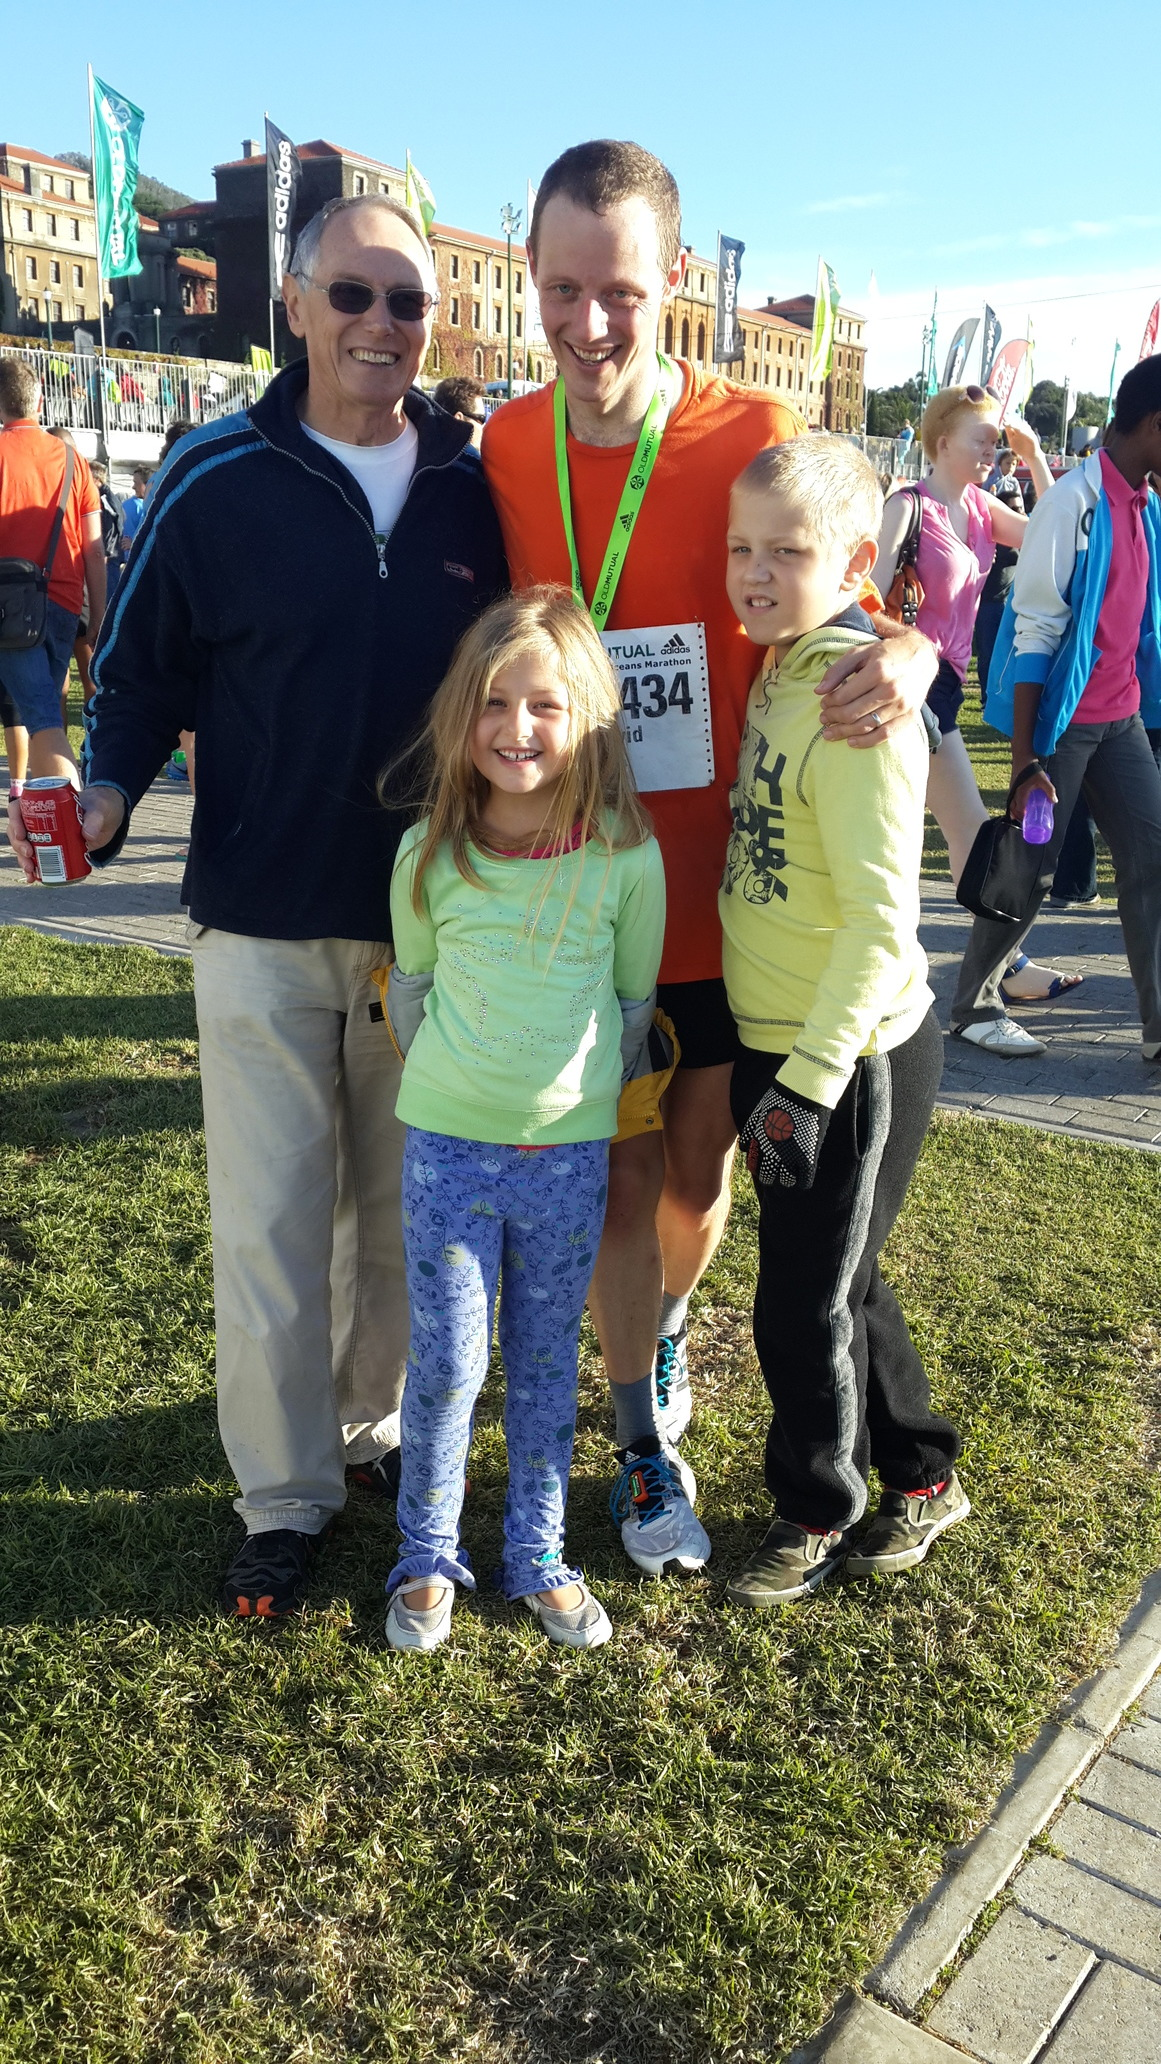 My dad and kids meeting me after the Two Oceans, April 2014